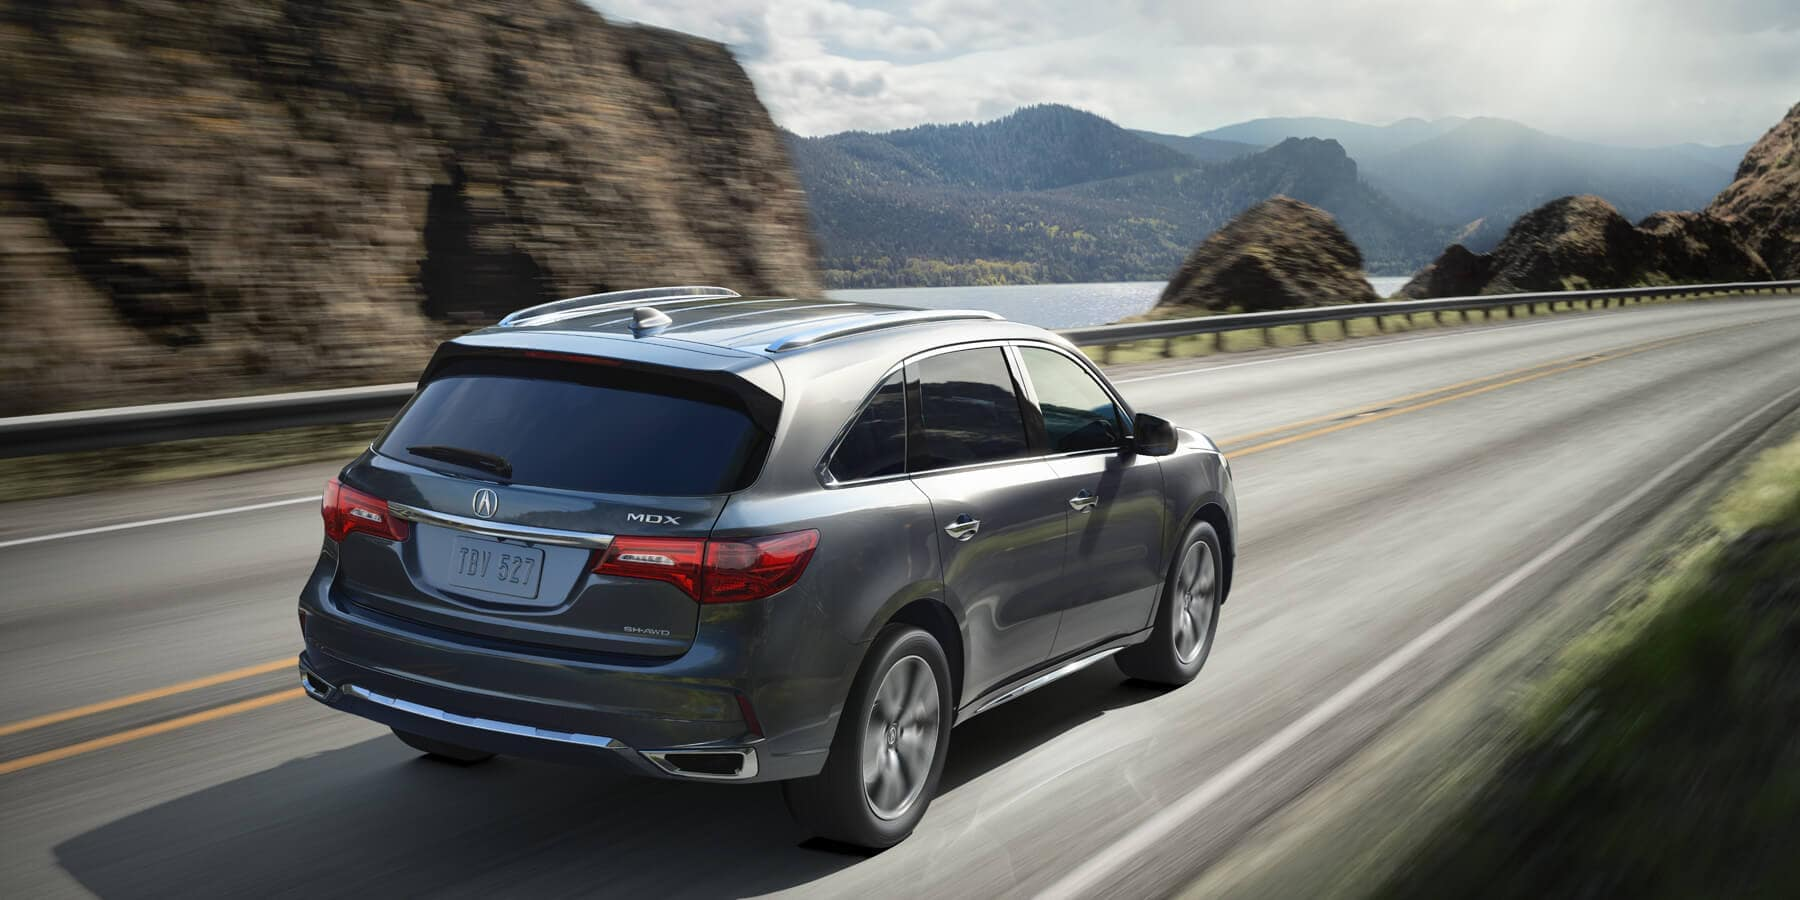 2020 Acura MDX Modern Steel Metallic Rear Angle